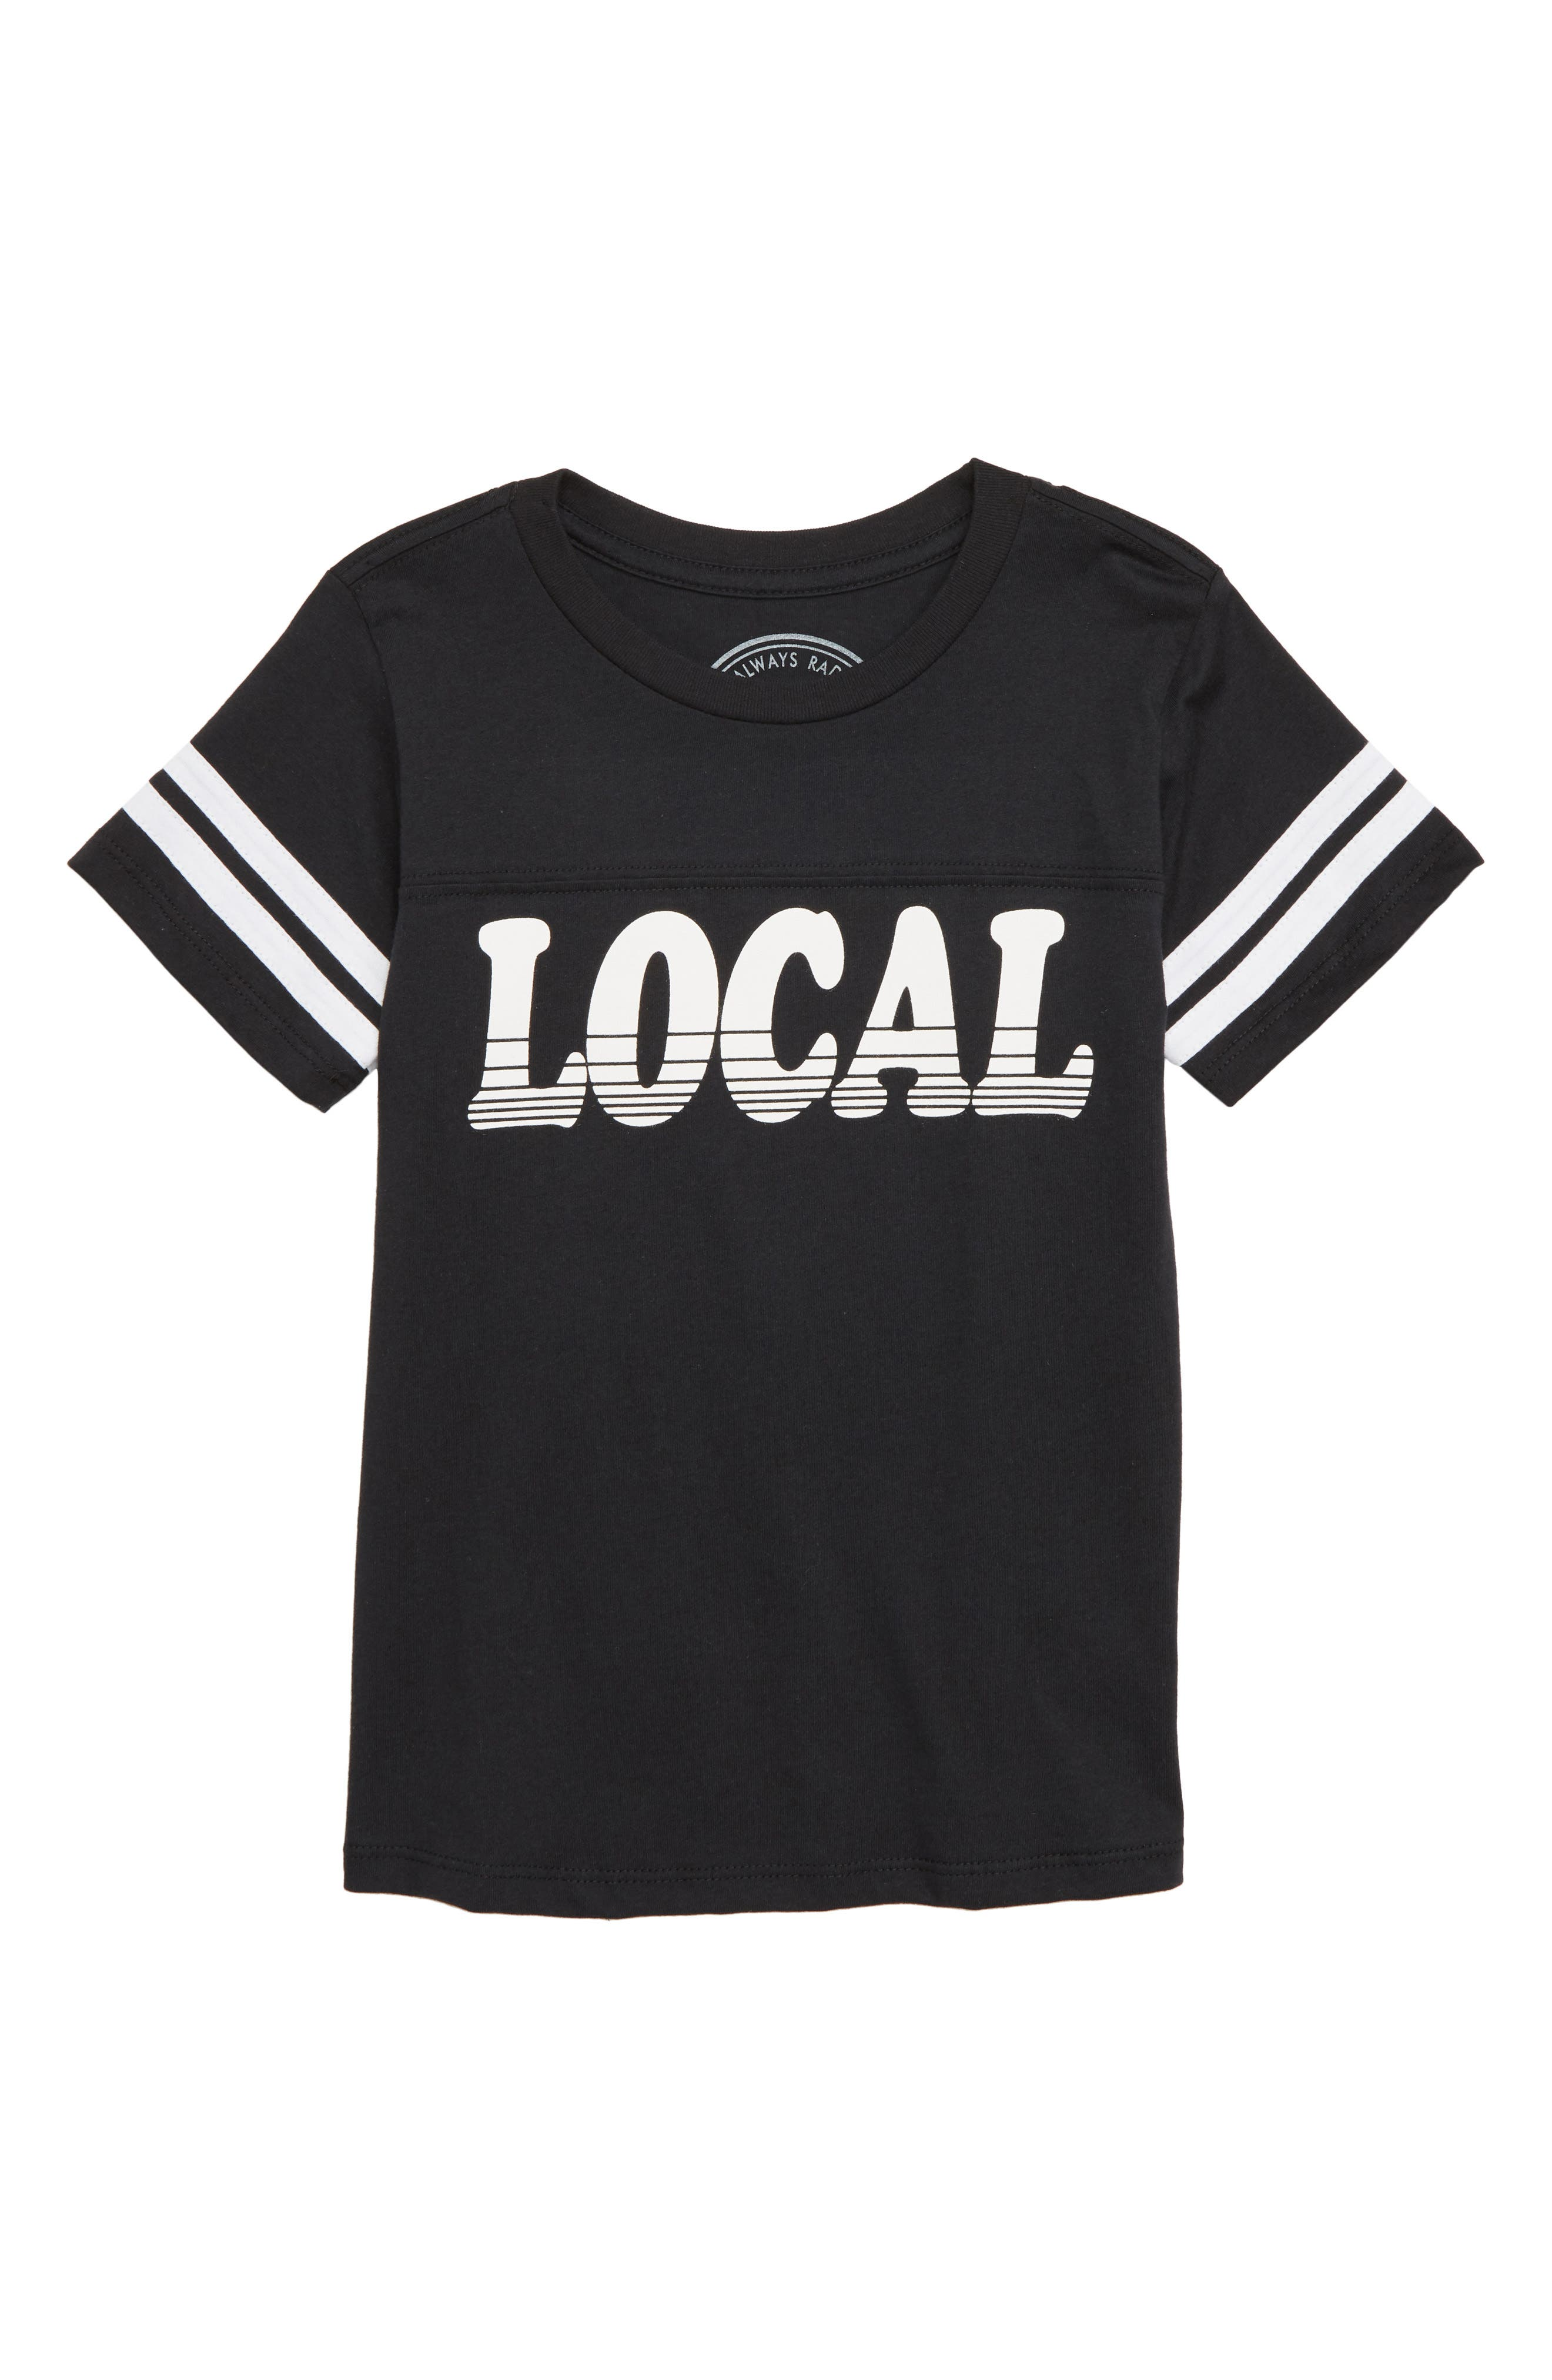 Local Football T-Shirt,                         Main,                         color, 001